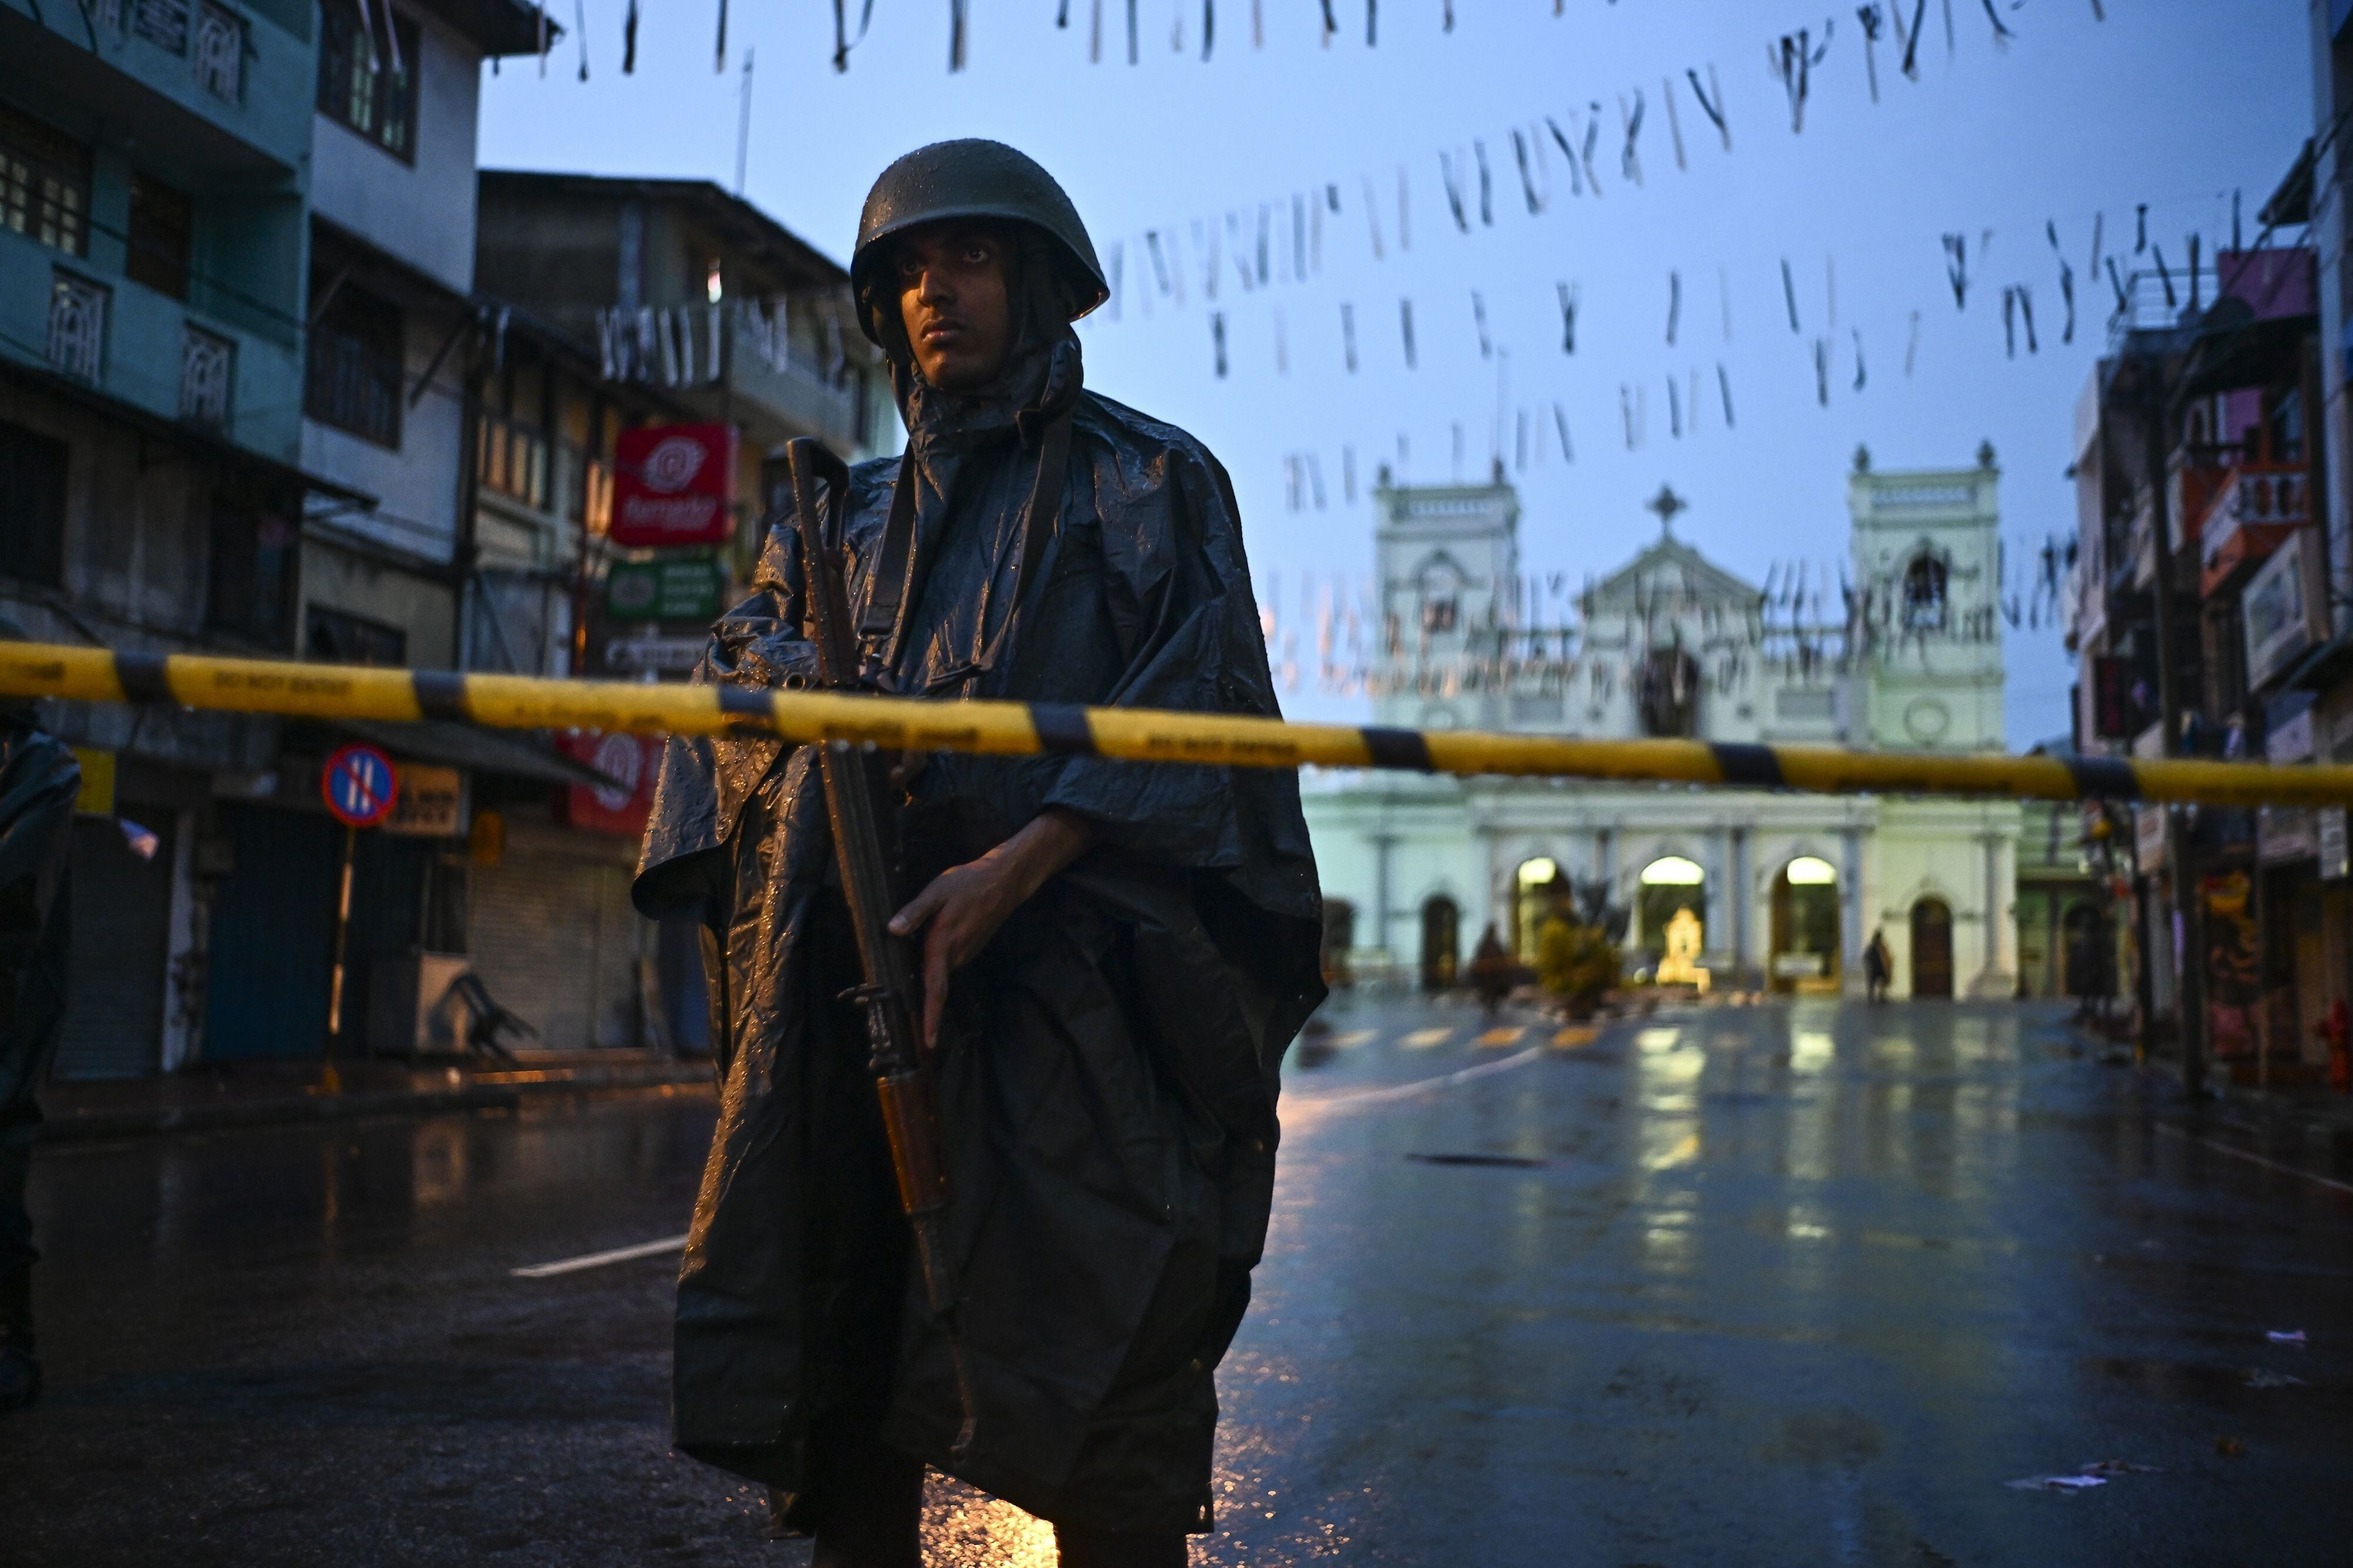 A Sri Lankan soldier stands guard under the rain at St. Anthony's Shrine in Colombo on April 25, 2019, following a series of bomb blasts targeting churches and luxury hotels on the Easter Sunday in Sri Lanka. - Sri Lanka's Catholic church suspended all public services over security fears on April 25, as thousands of troops joined the hunt for suspects in deadly Easter bombings that killed nearly 360 people. (Photo by Jewel SAMAD / AFP)        (Photo credit should read JEWEL SAMAD/AFP/Getty Images)